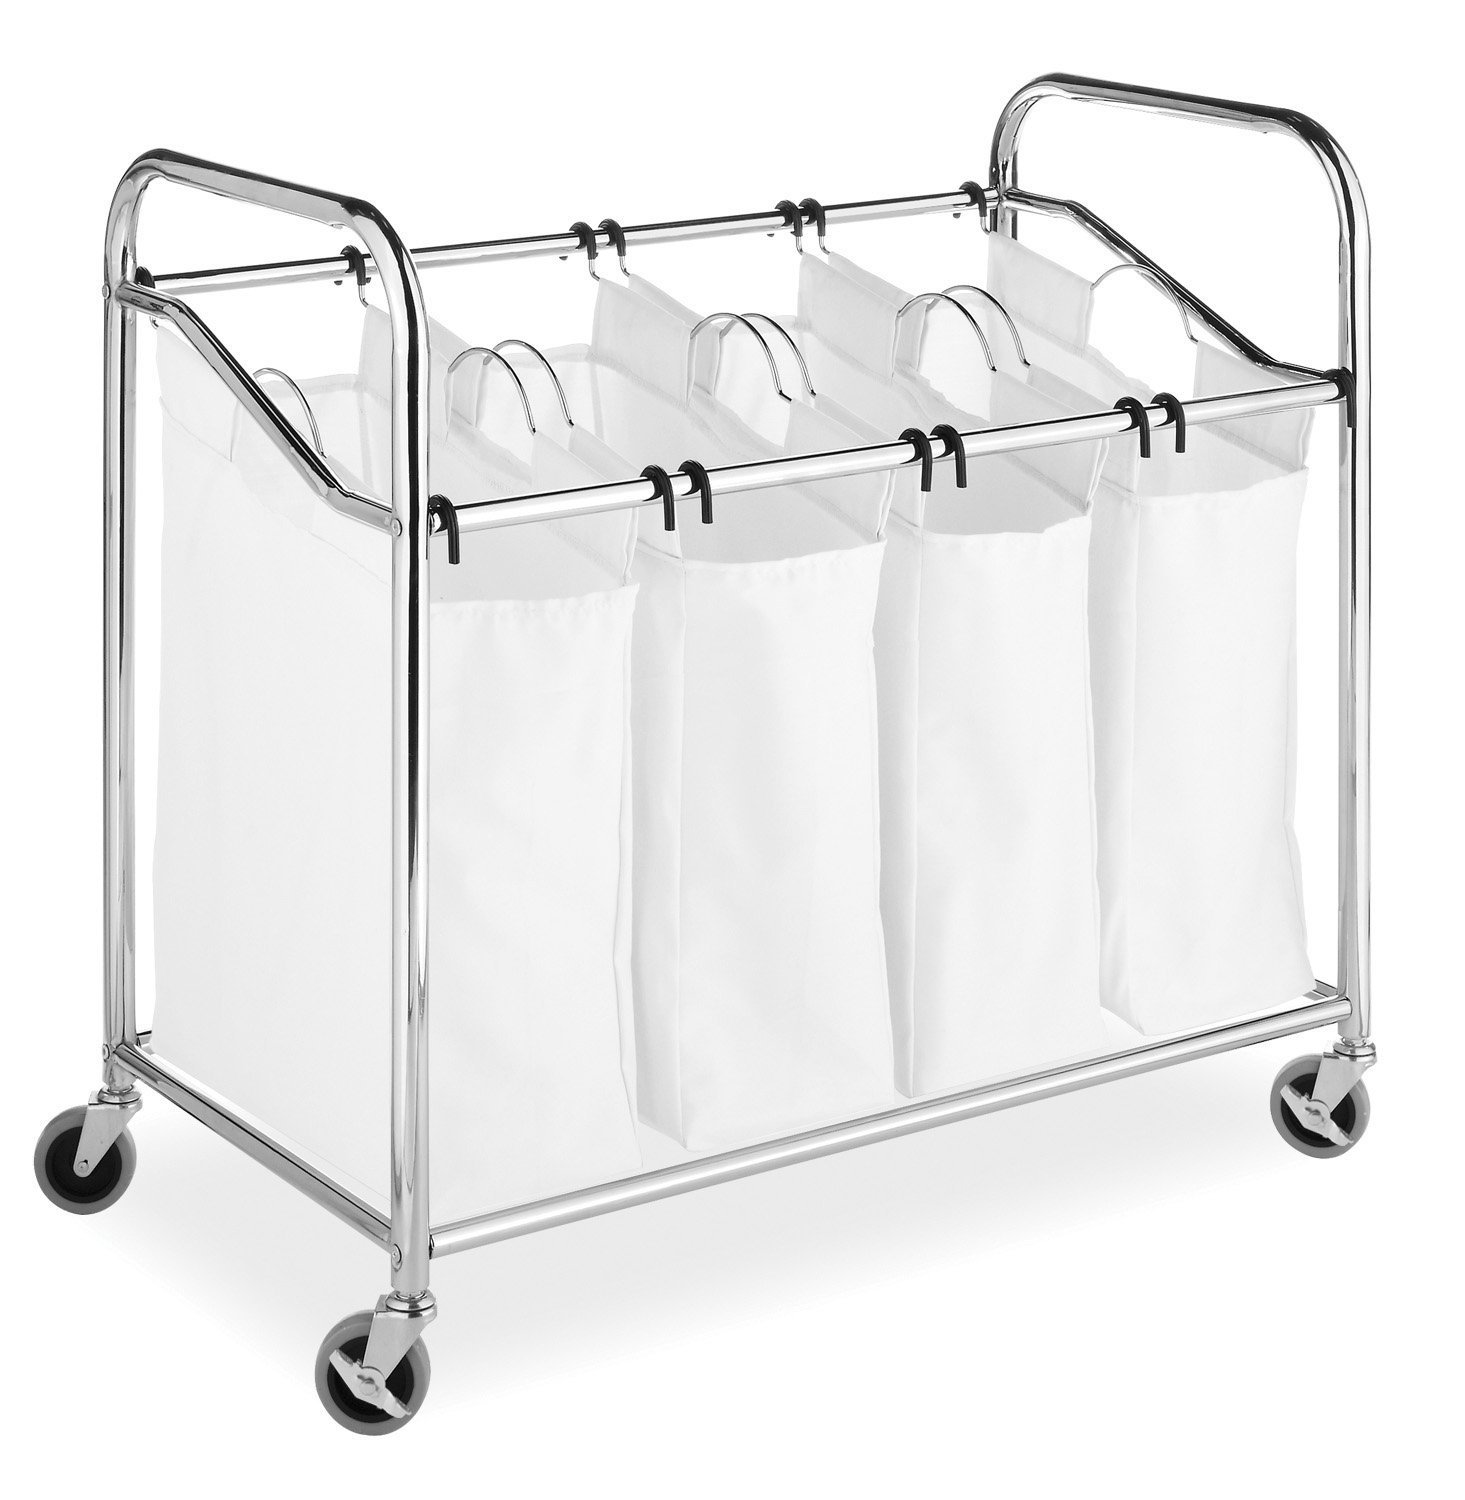 Whitmor 4-Section Laundry Sorter with Wheels Chrome & White